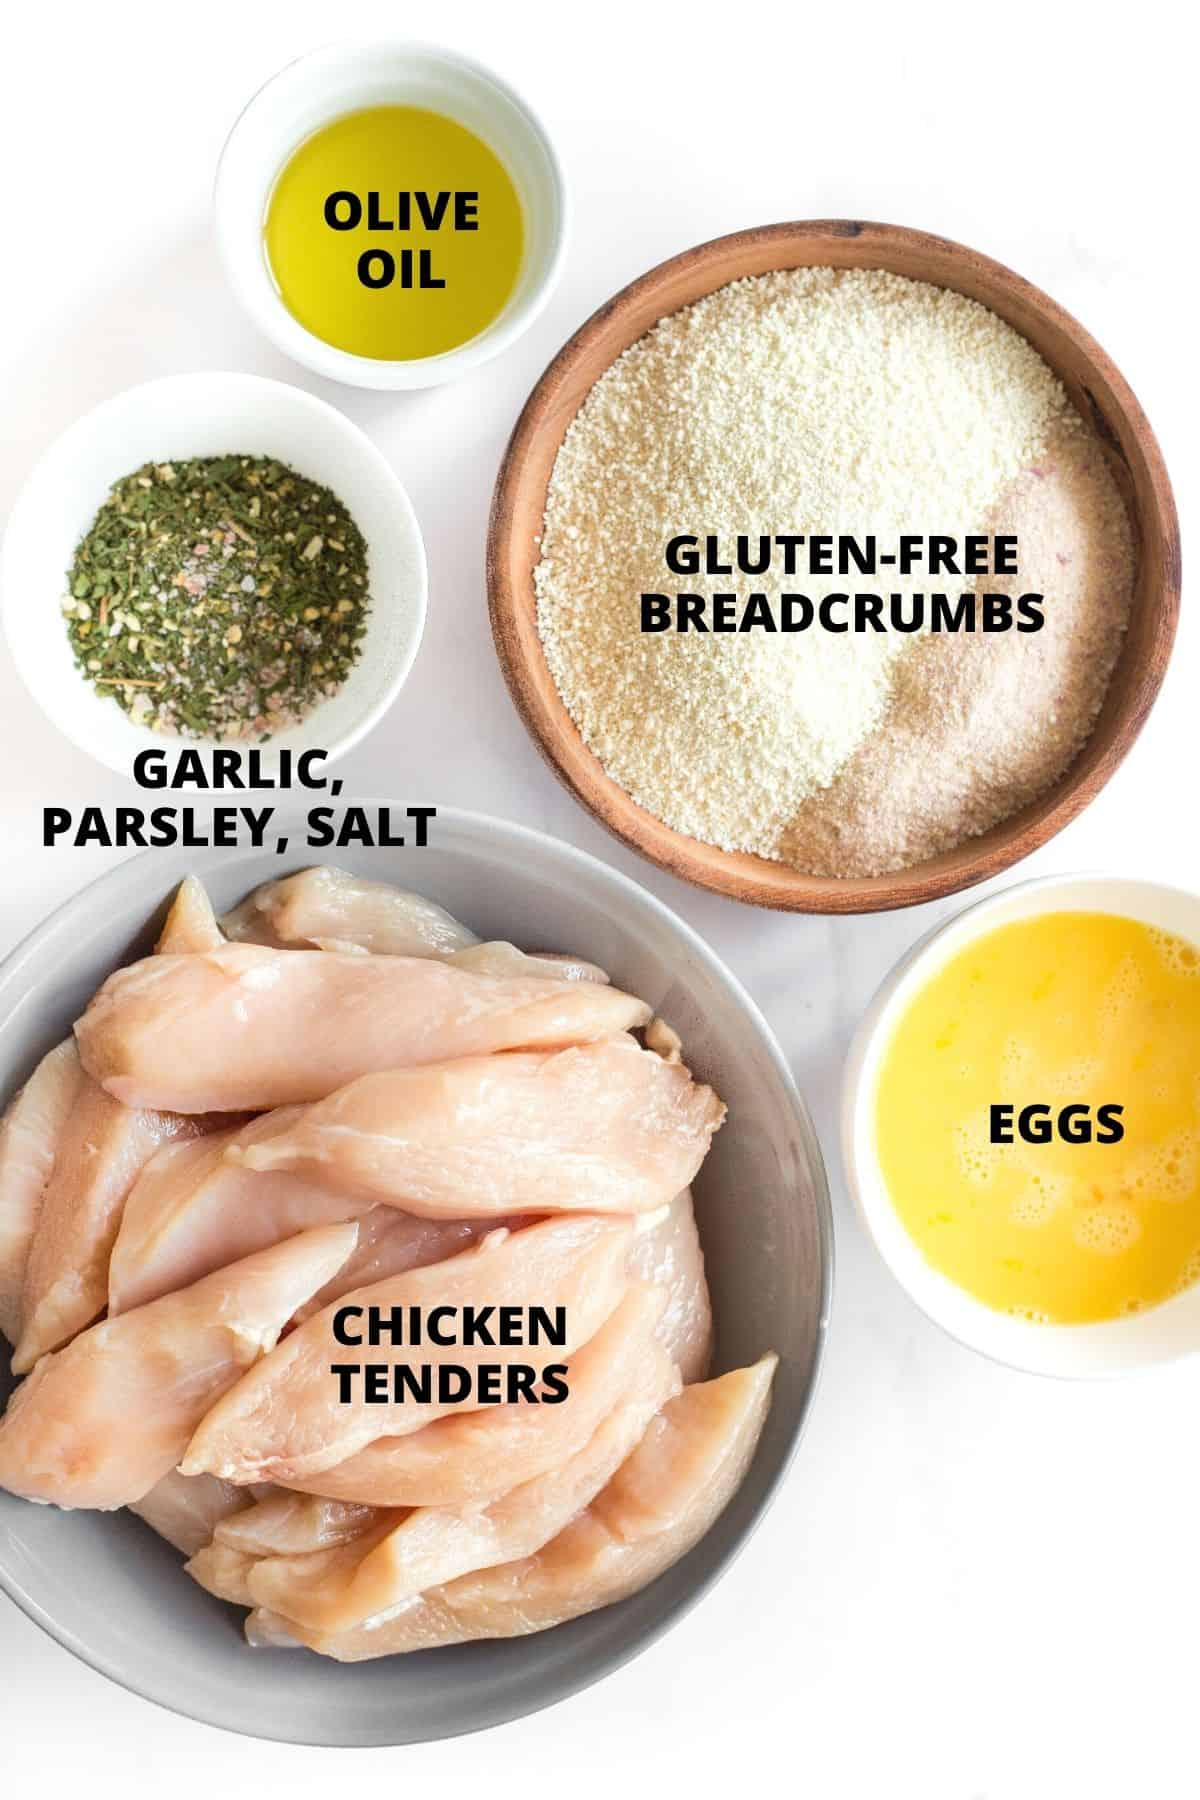 Labeled ingredients for air fryer chicken tenders.